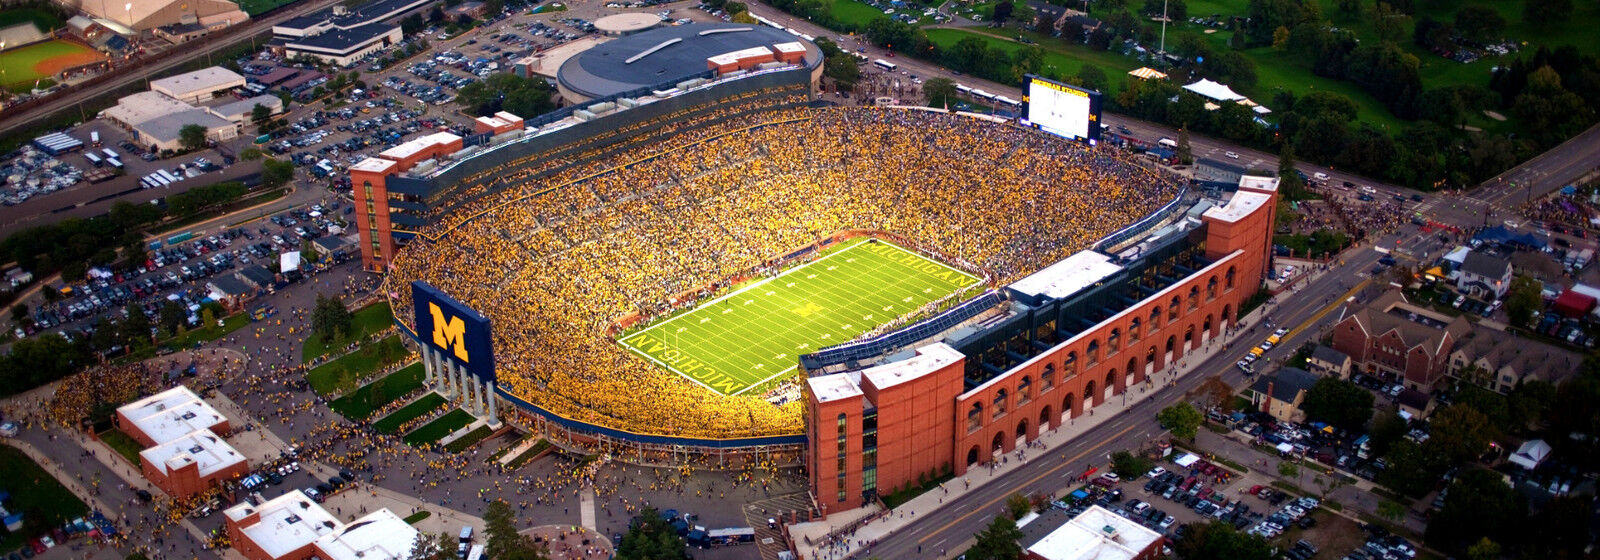 2018 Michigan Wolverines Football Season Tickets - Season Package (Includes Tickets for all Home Games)